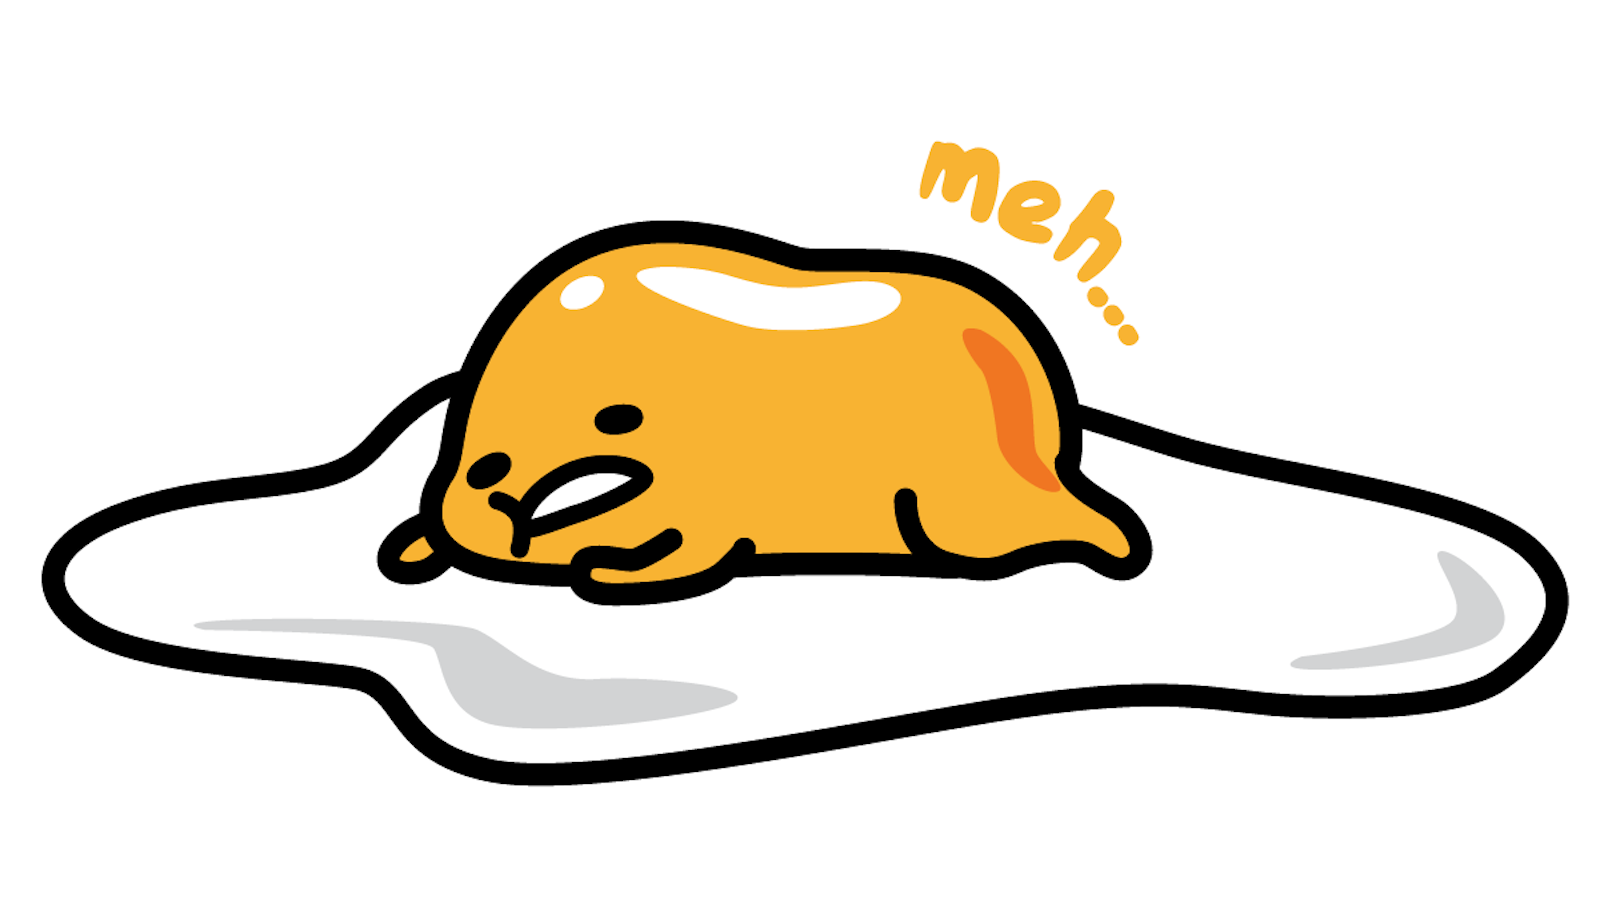 Gudetama Egg From Sanrio Gudetama The Lazy Egg Is The Hello Kitty